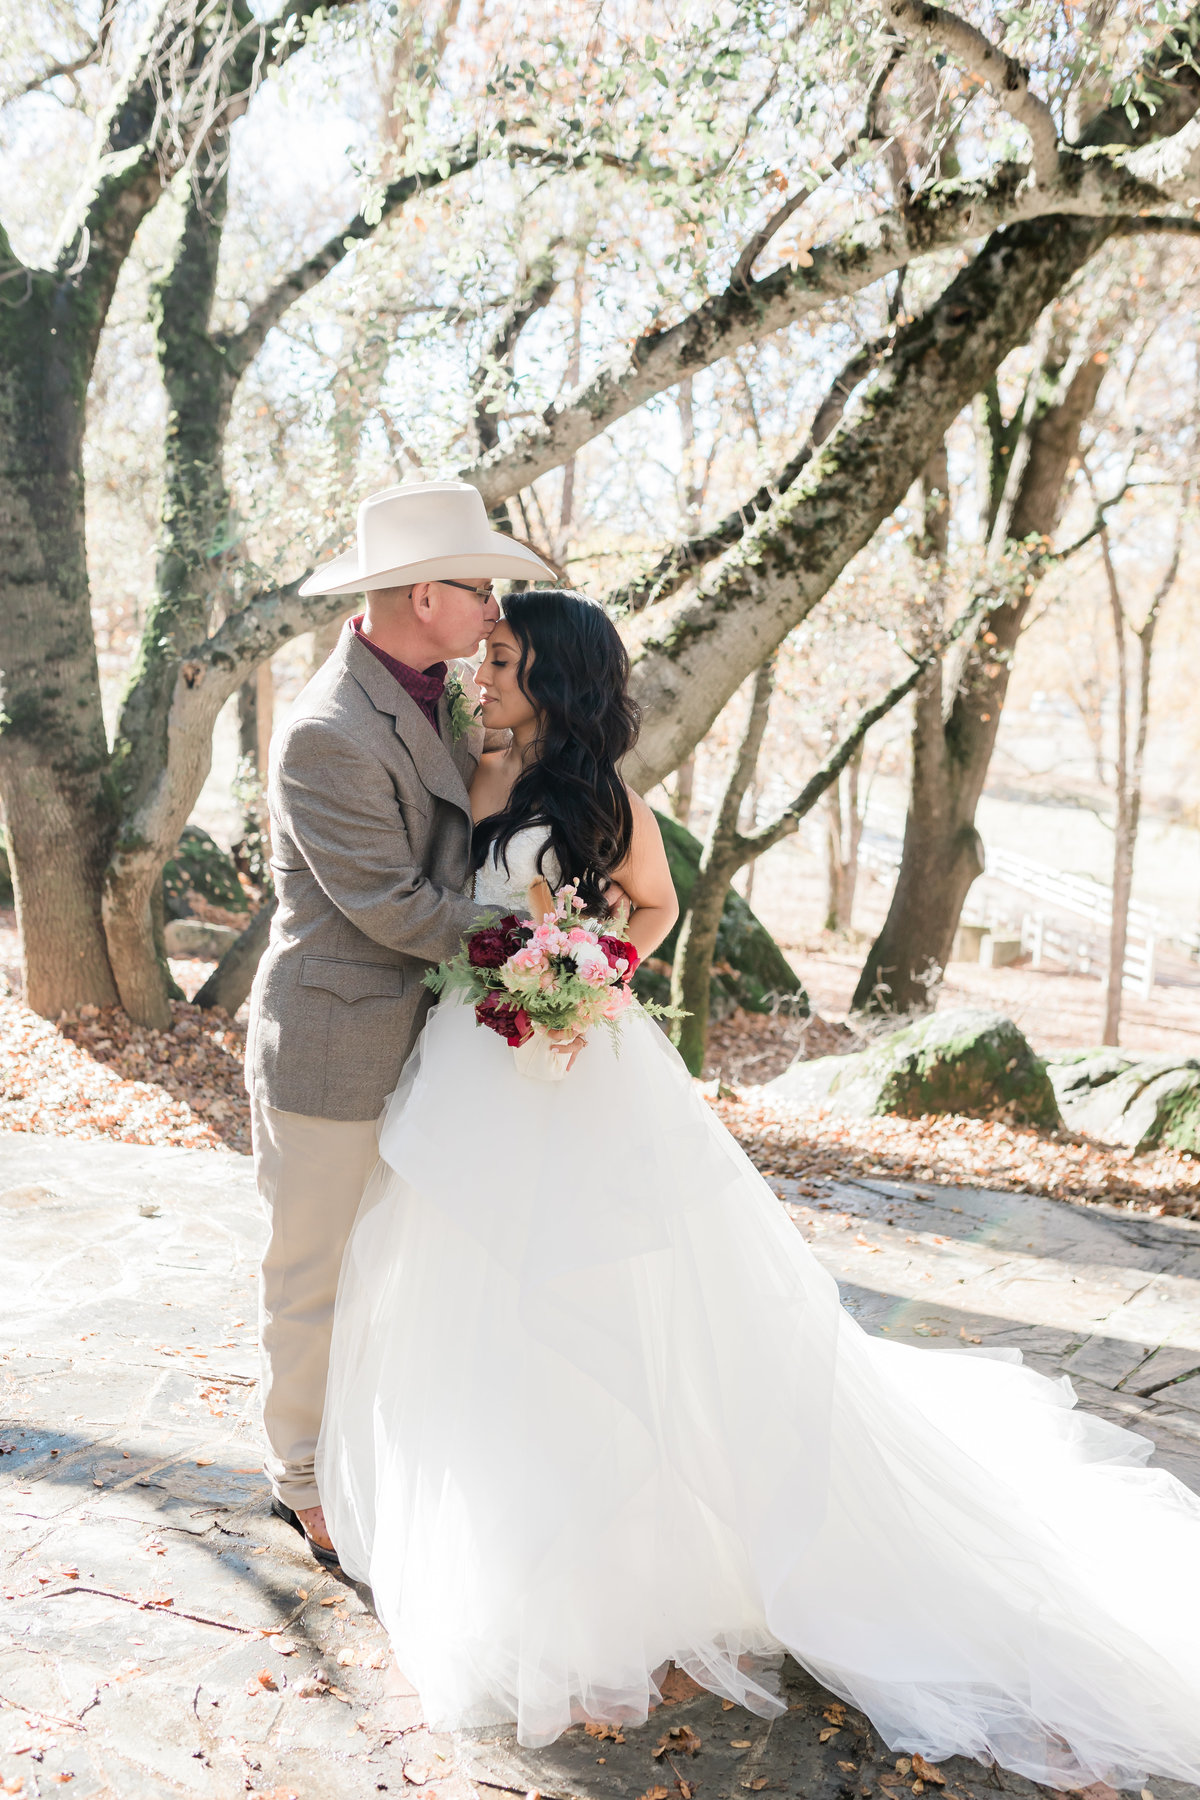 Gina and Garret eloped near Yosemite for their wedding ceremony and had their photos taken in the forest.